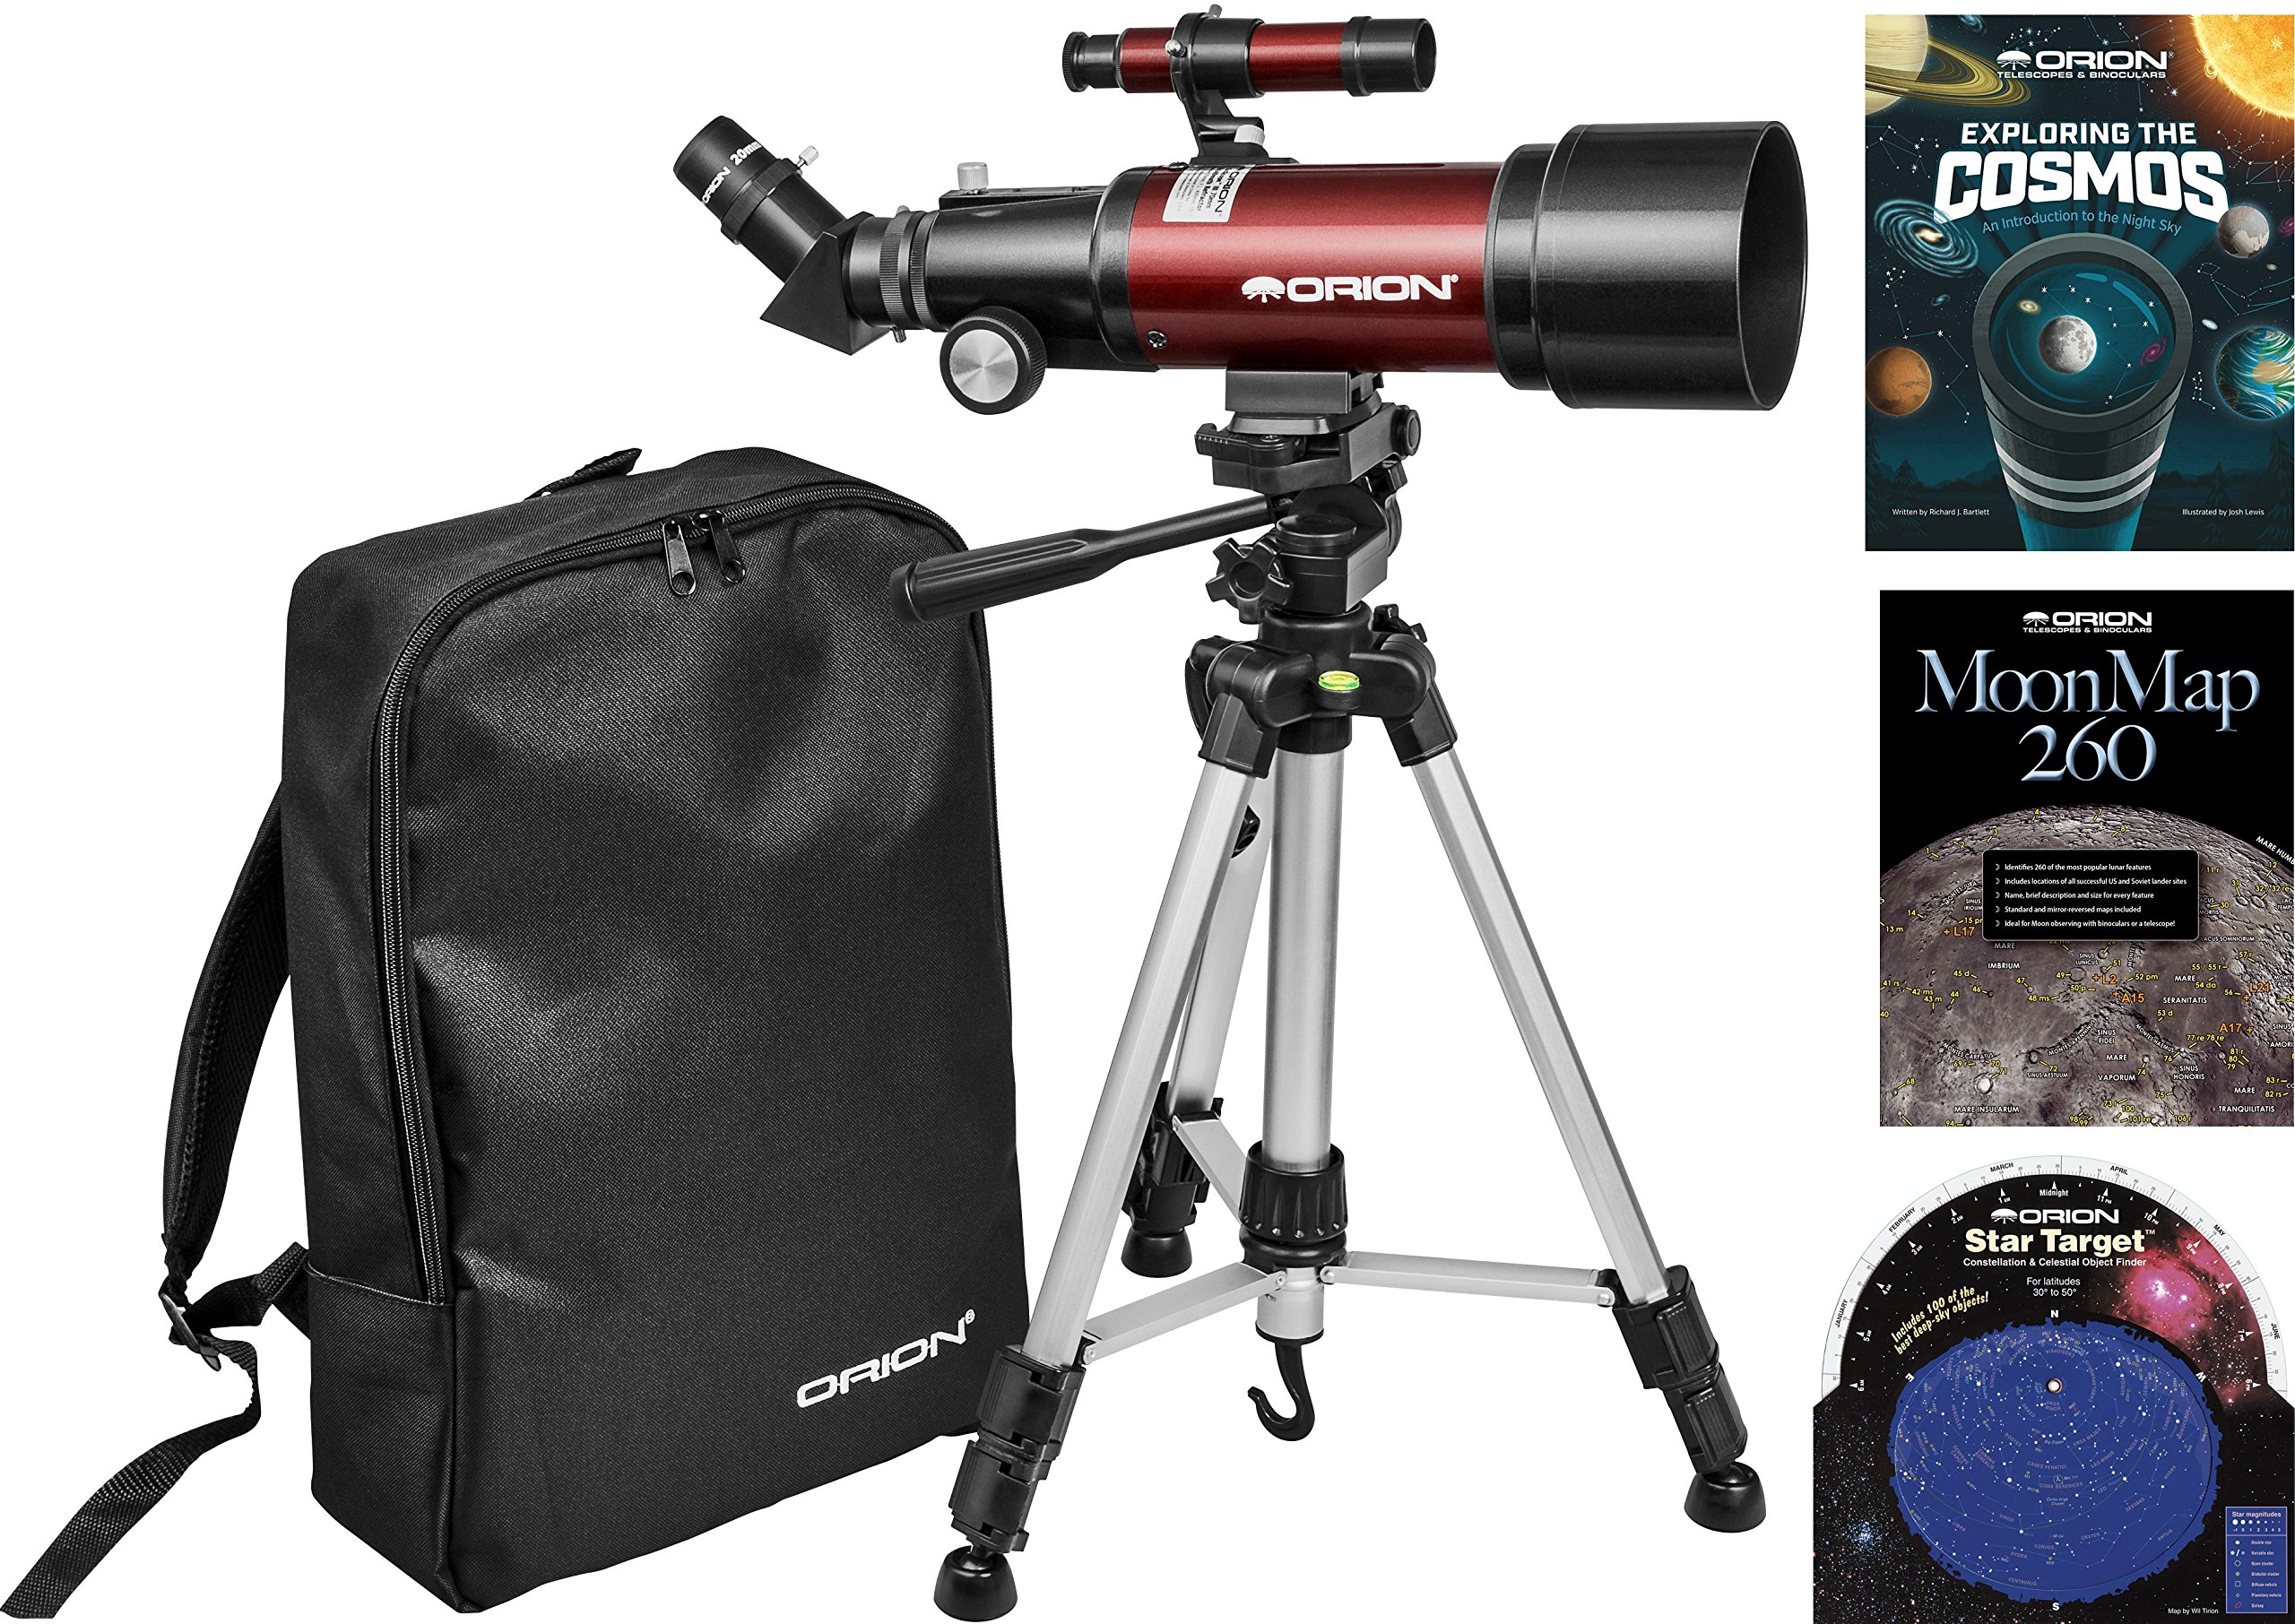 Orion GoScope III 70mm Refractor Telescope Kit by Orion